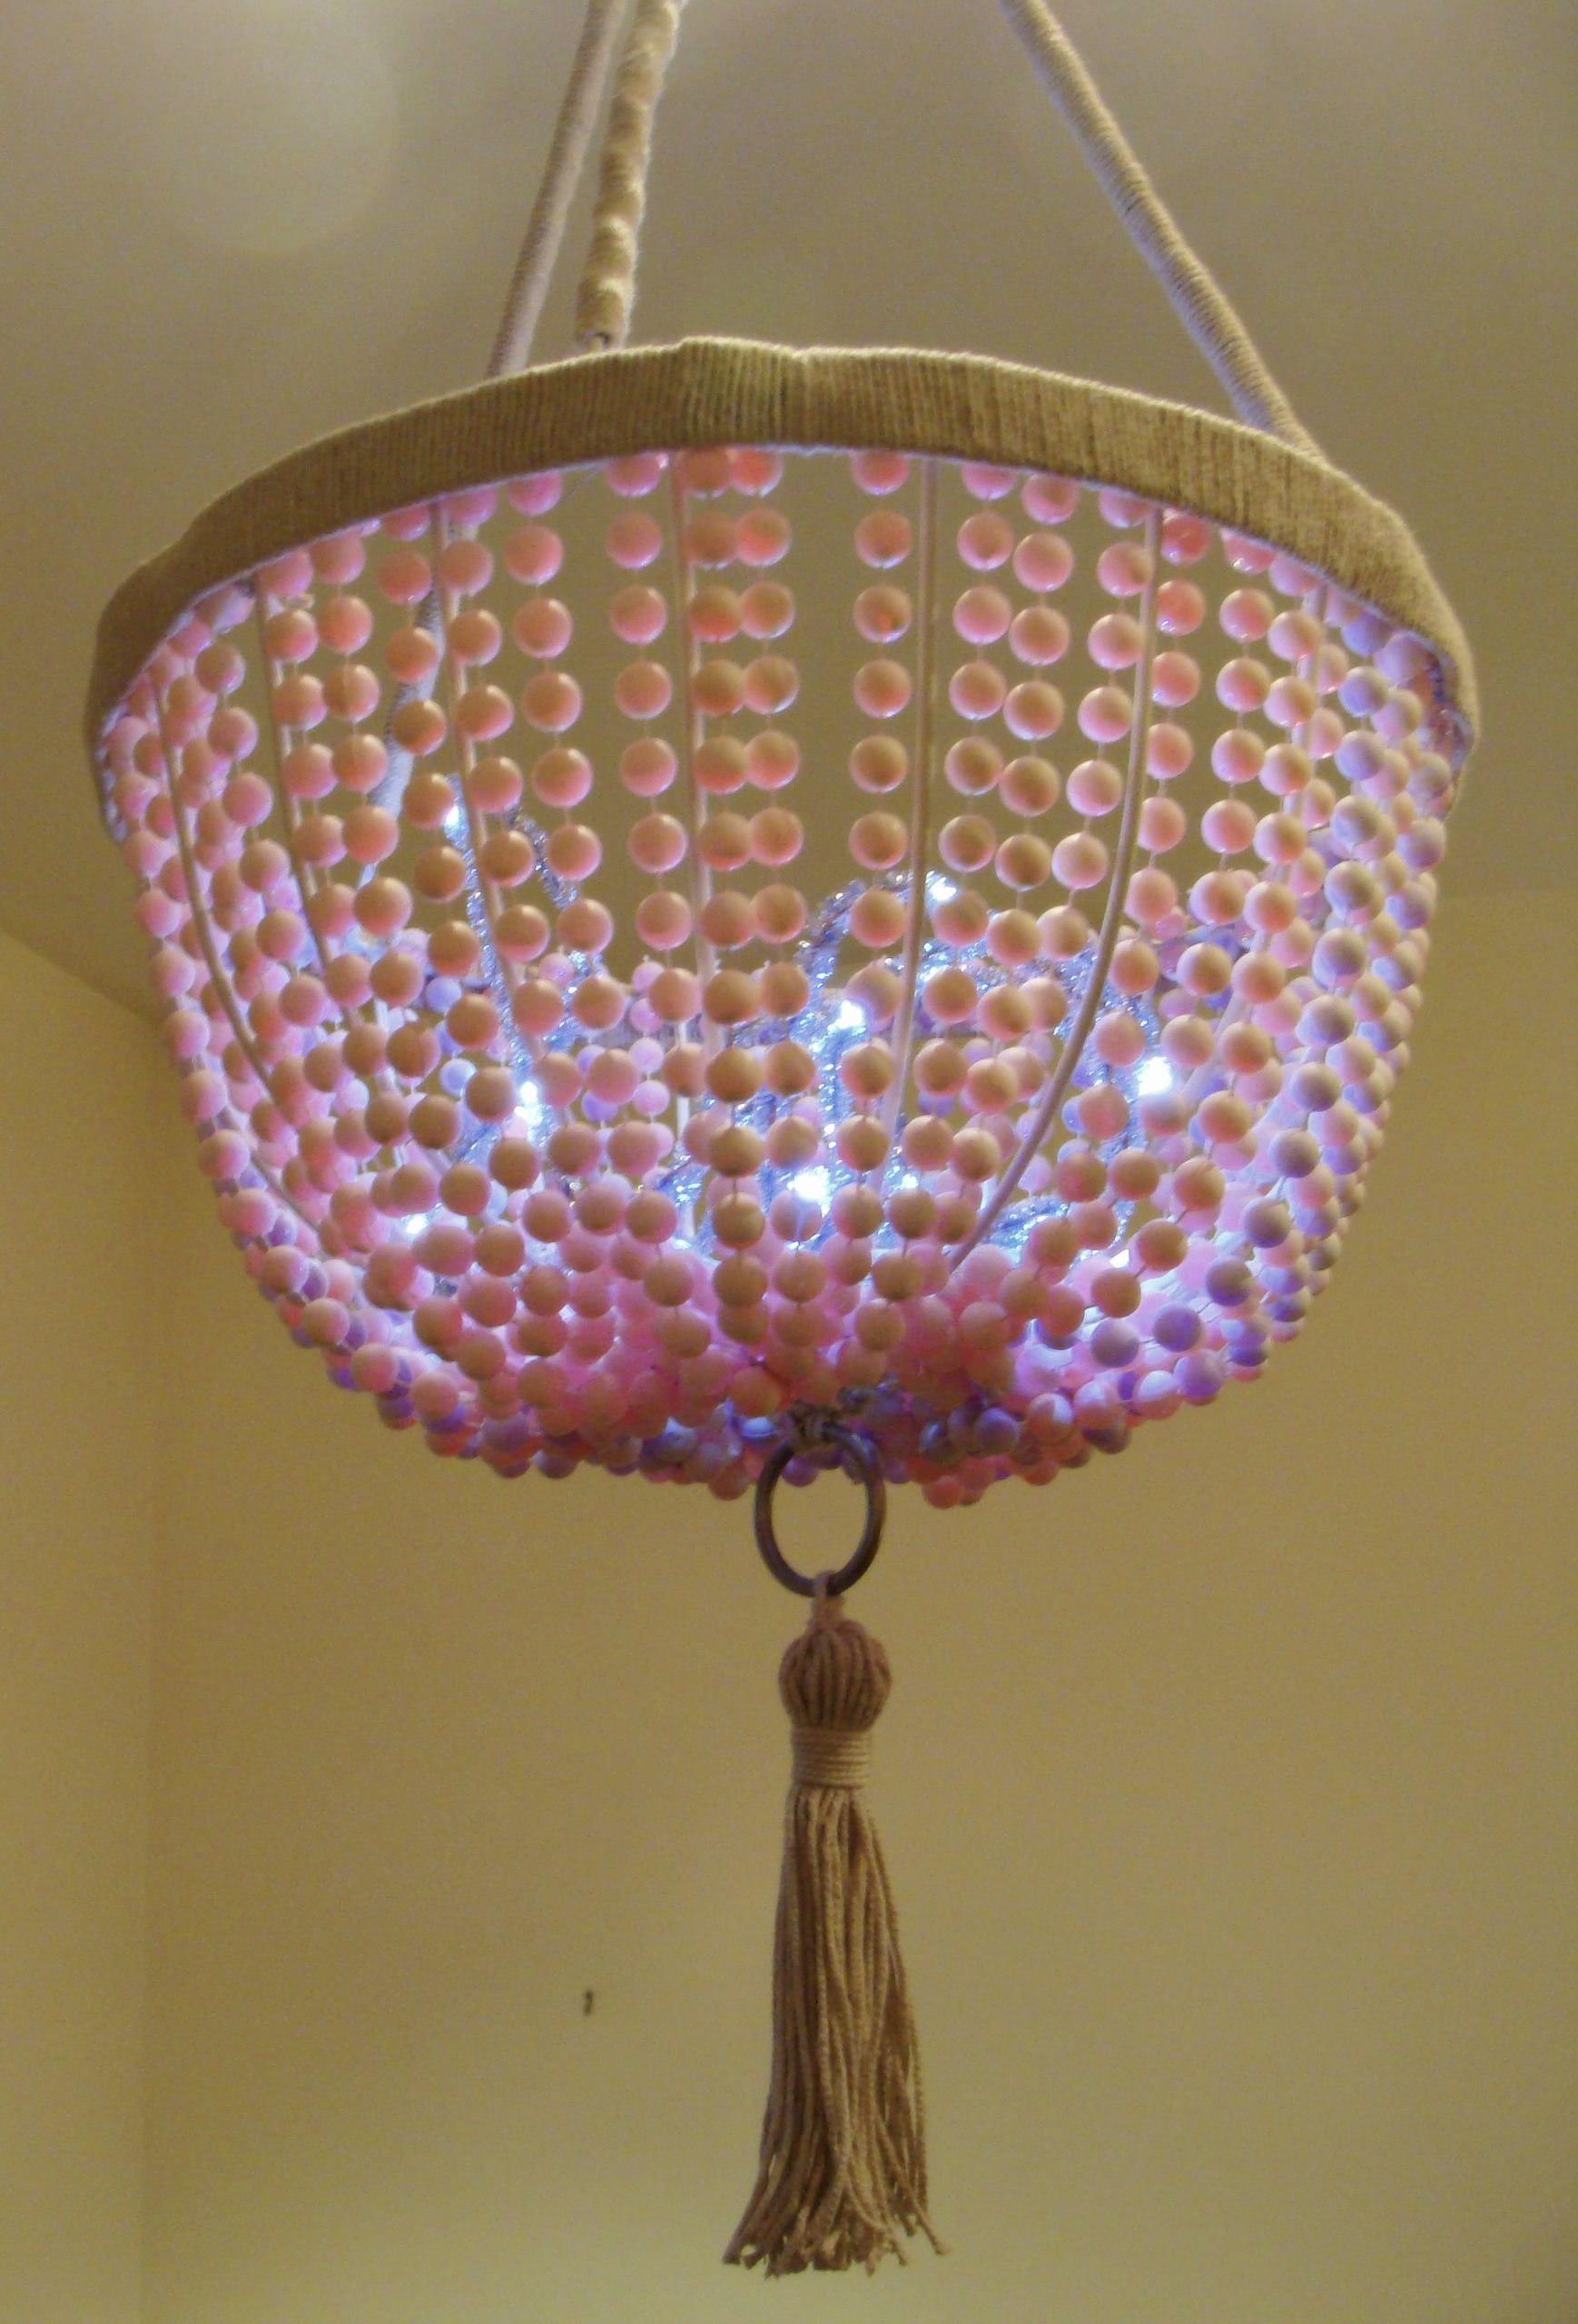 Stella Rose Chandelier Similar To The Serena And Lily Glass Bead It Goes For 895 Mine Is Made Of Dollar Strings Hanging Flower